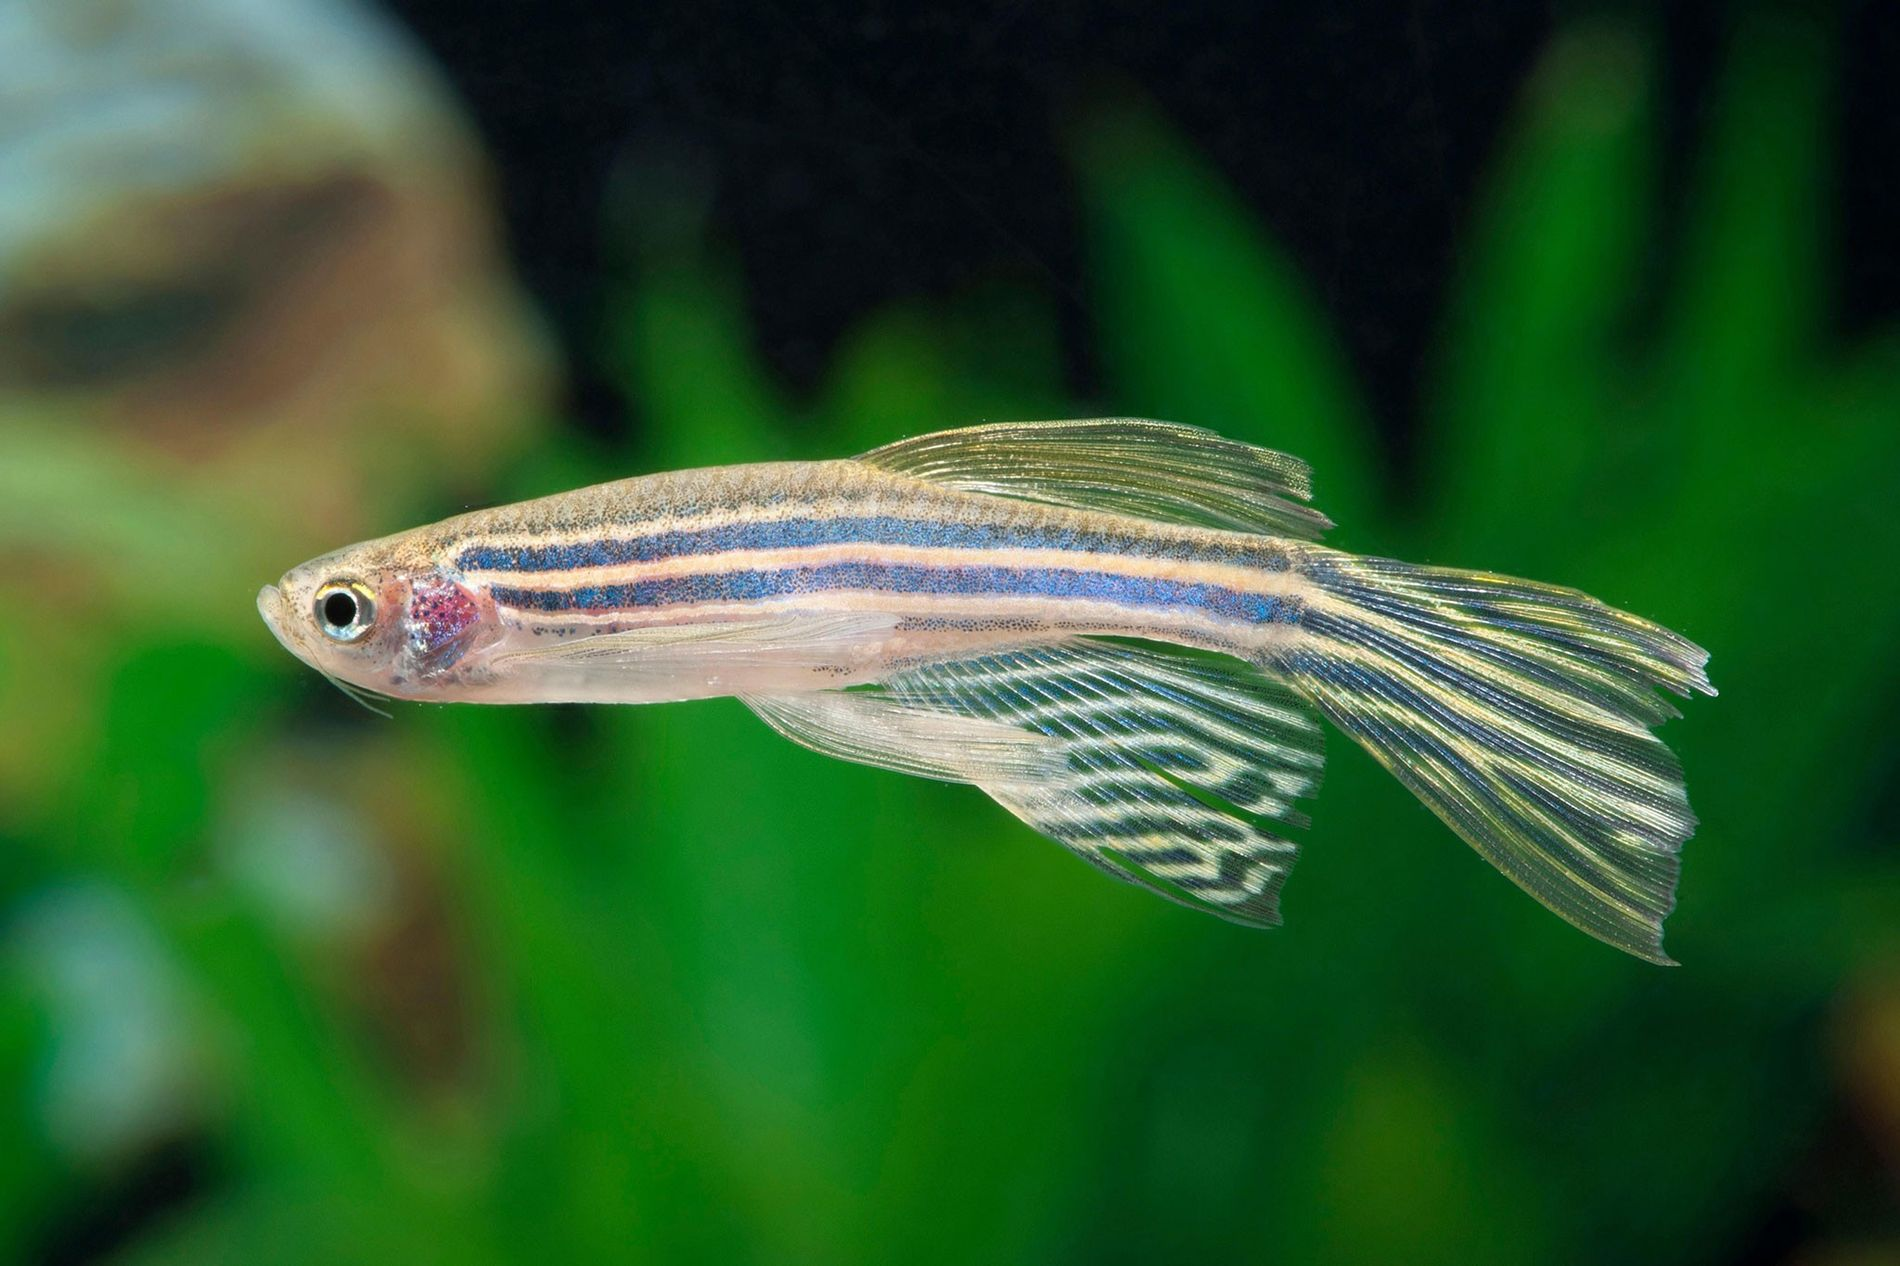 Zebrafish, like the adult seen here, seem to experience sleep cycles that are similar to REM ...